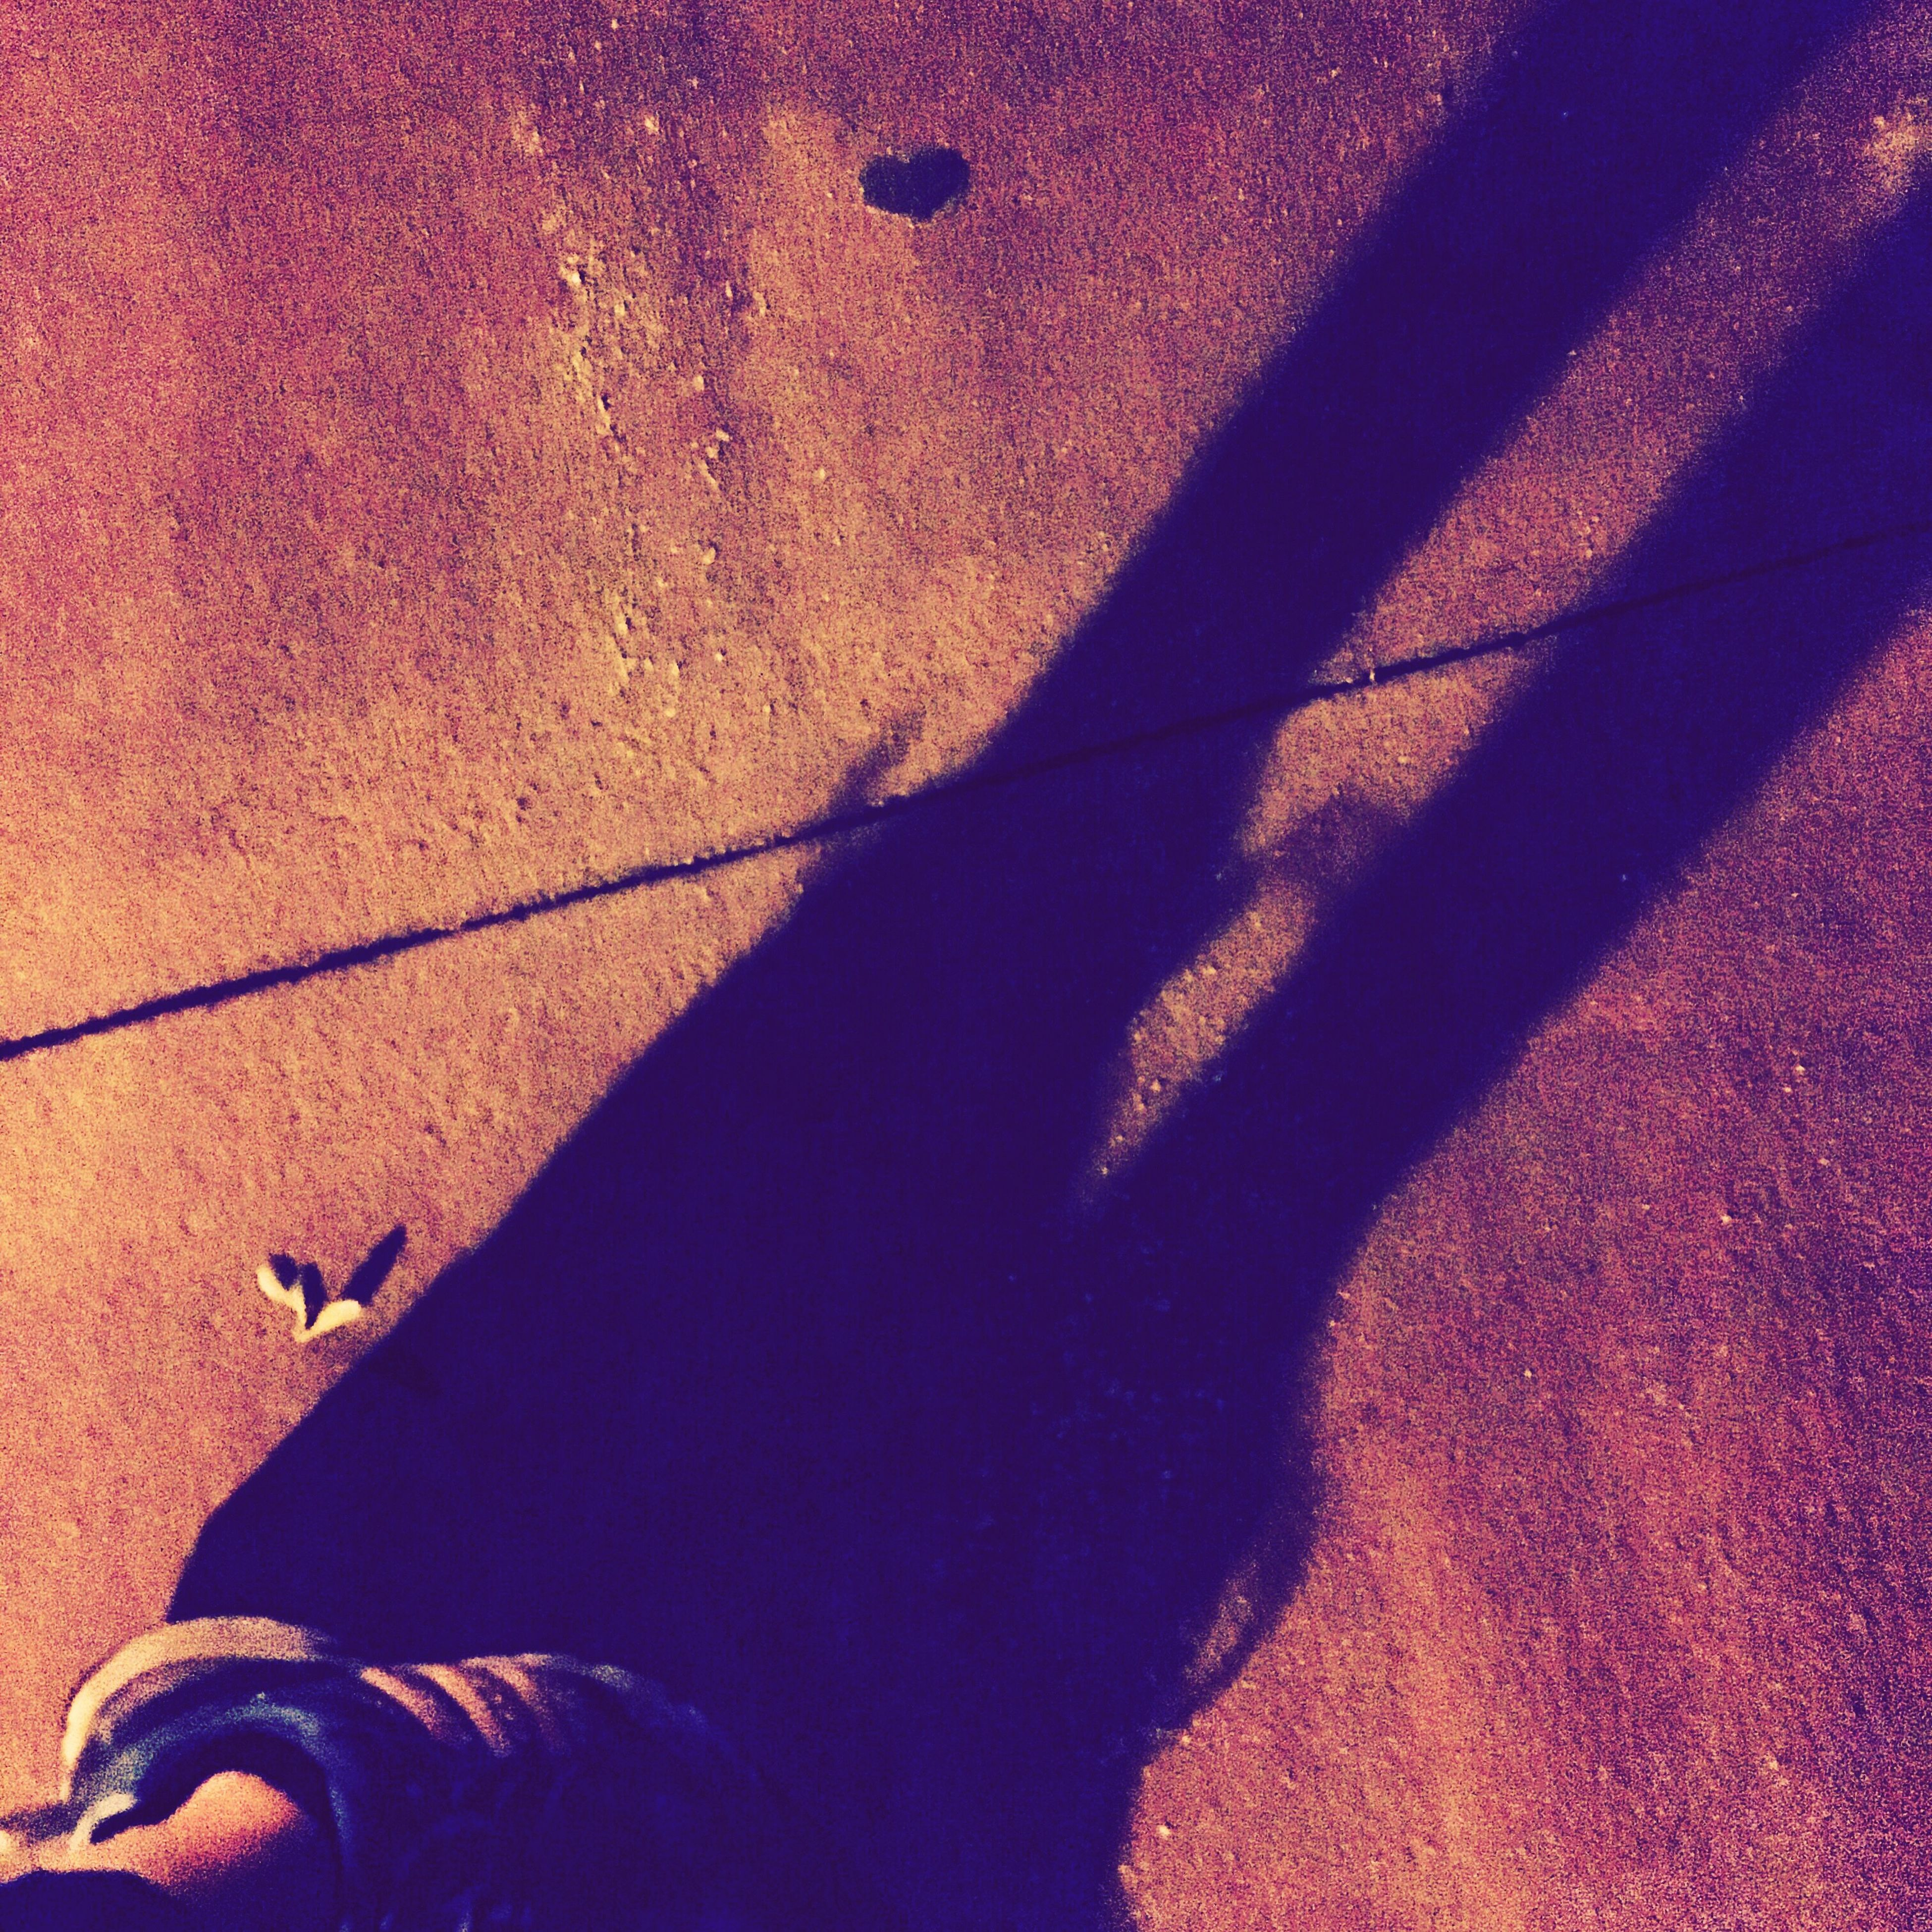 shadow, sunlight, low section, person, shoe, street, road, footwear, personal perspective, human foot, outdoors, day, focus on shadow